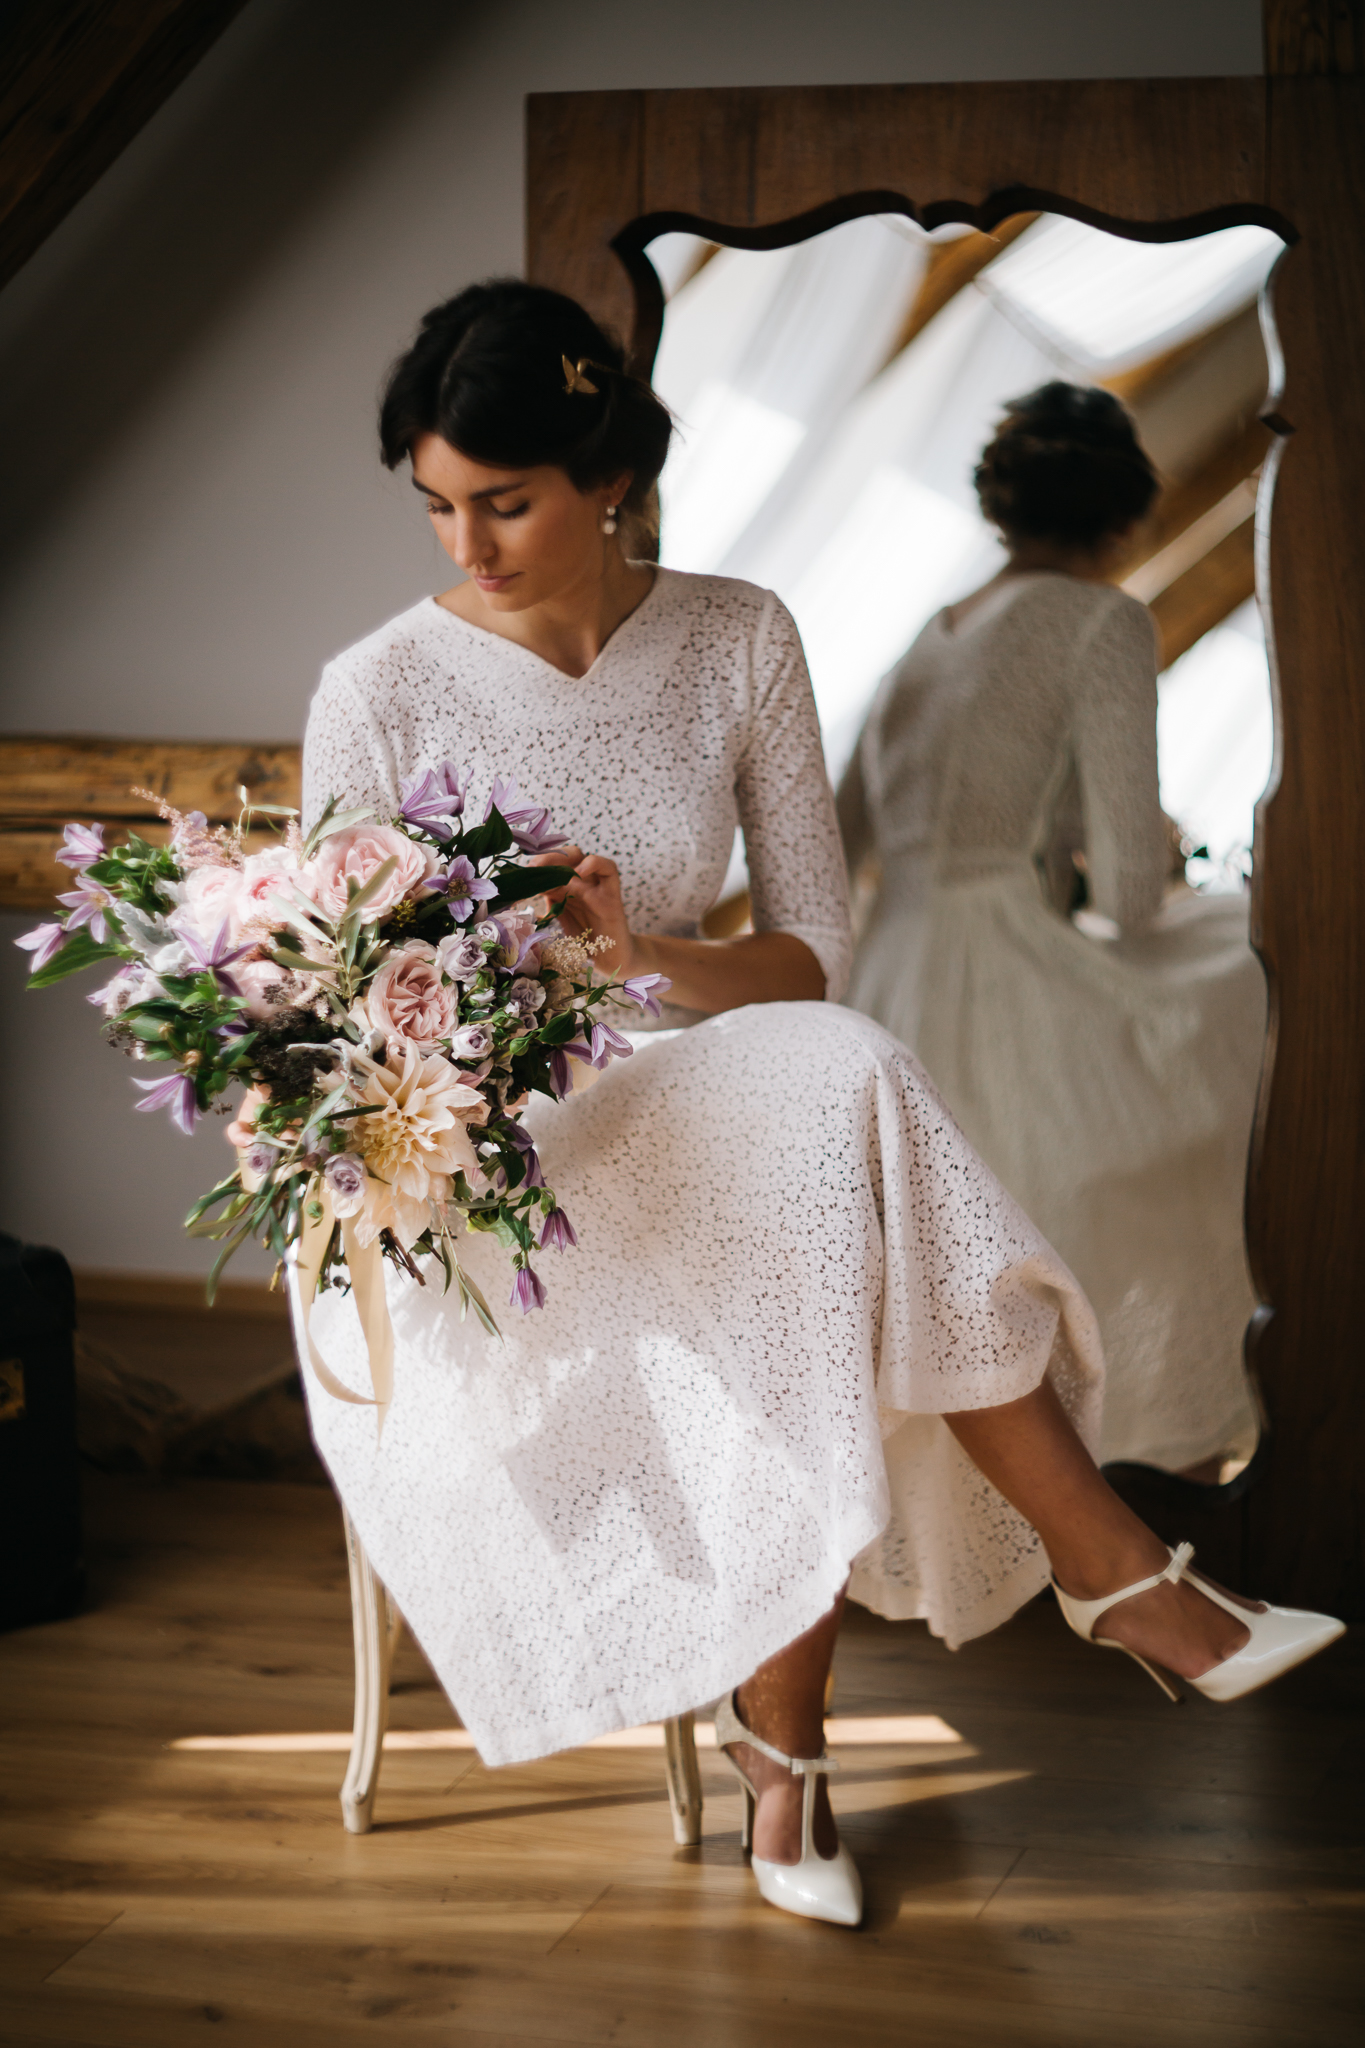 1950 vintage lace wedding dress and blush roses clematis dusty green bridal bouquet by PONK Rentals at Wiegerova Vila Slovakia